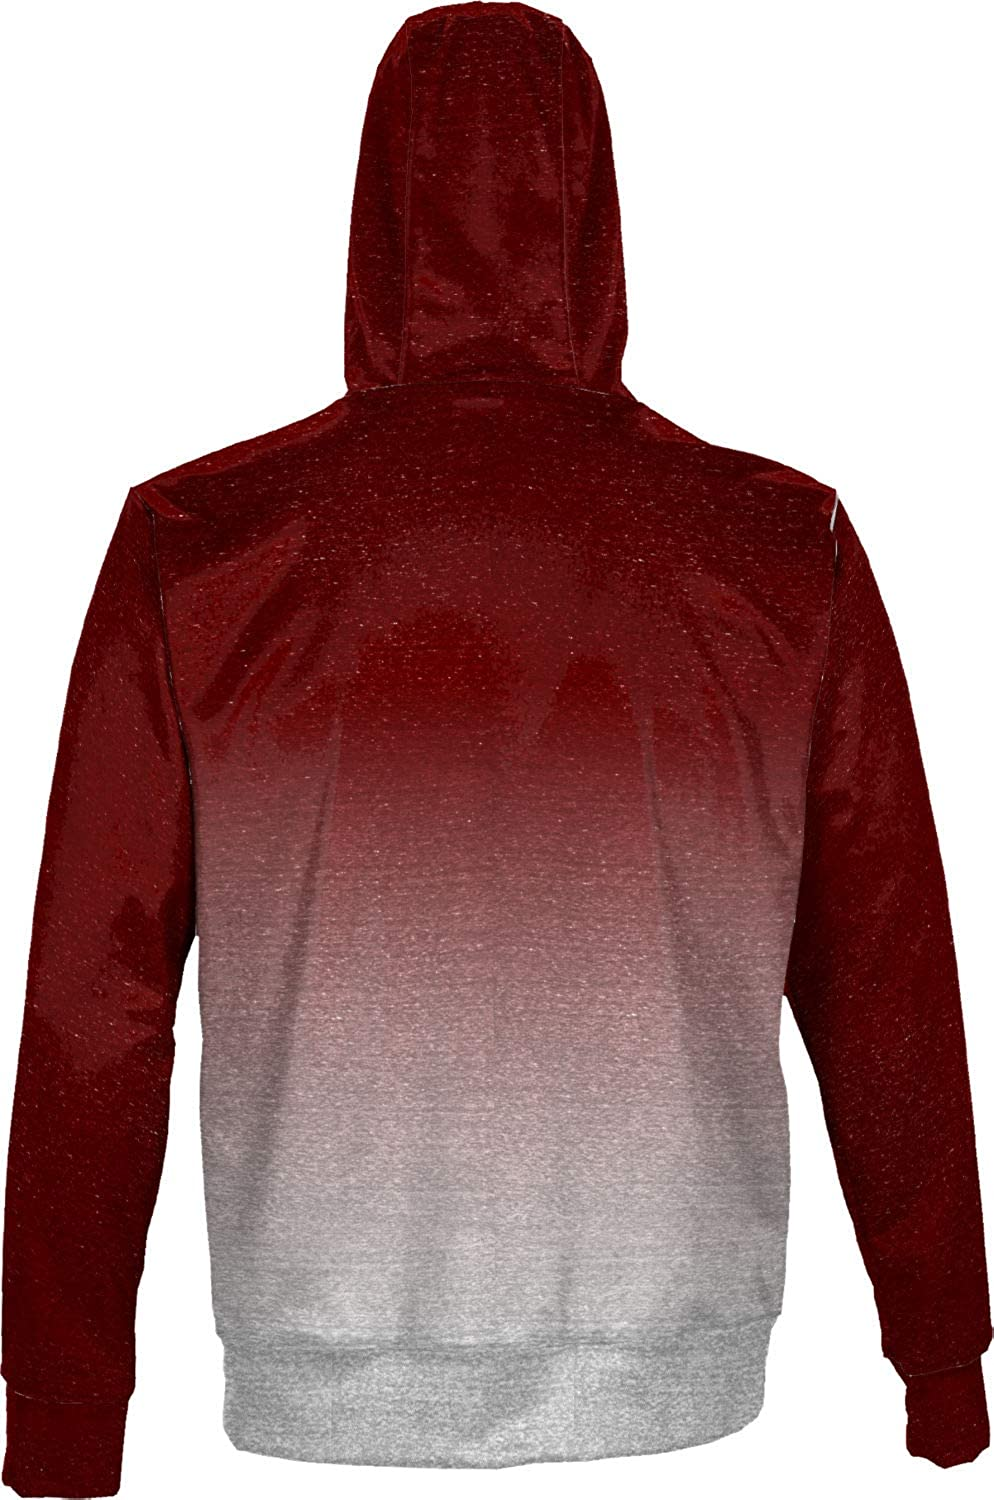 Ombre School Spirit Sweatshirt ProSphere Brookwood High School Boys Zipper Hoodie